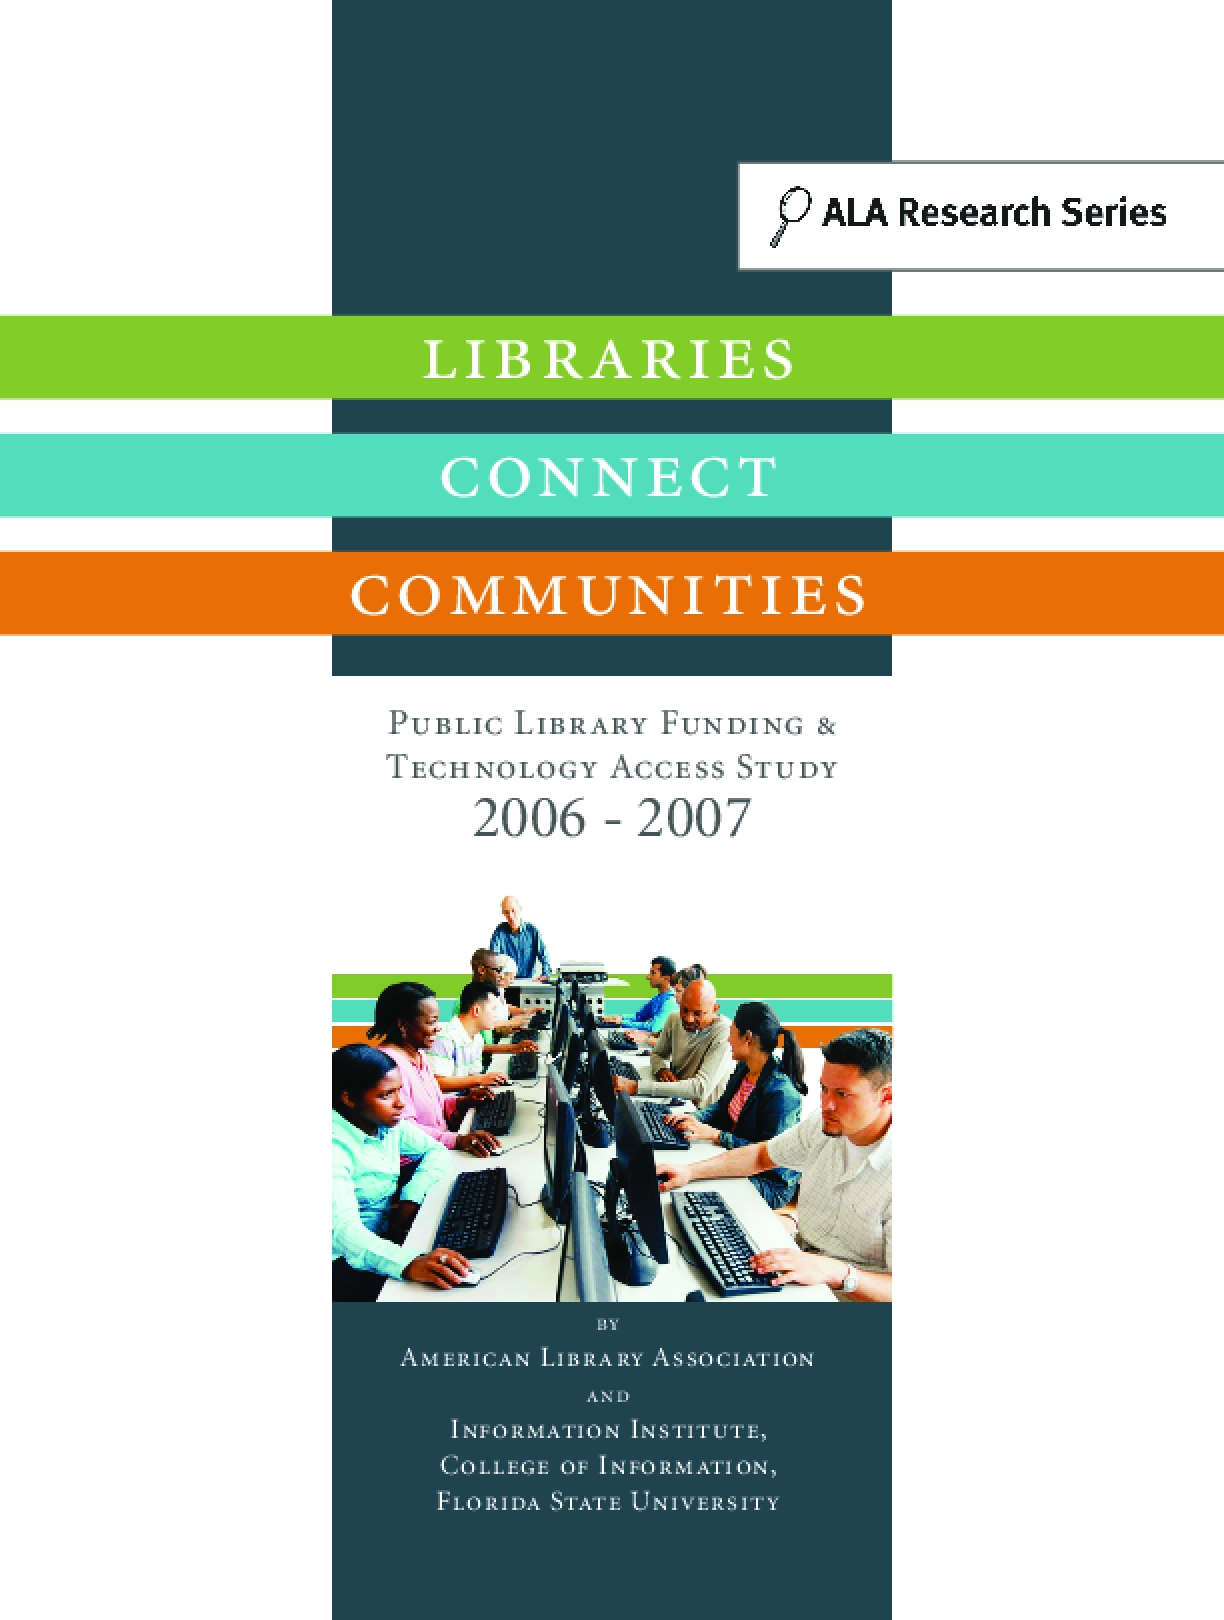 Libraries Connect Communities: Public Library Funding & Technology Access Study 2006 - 2007